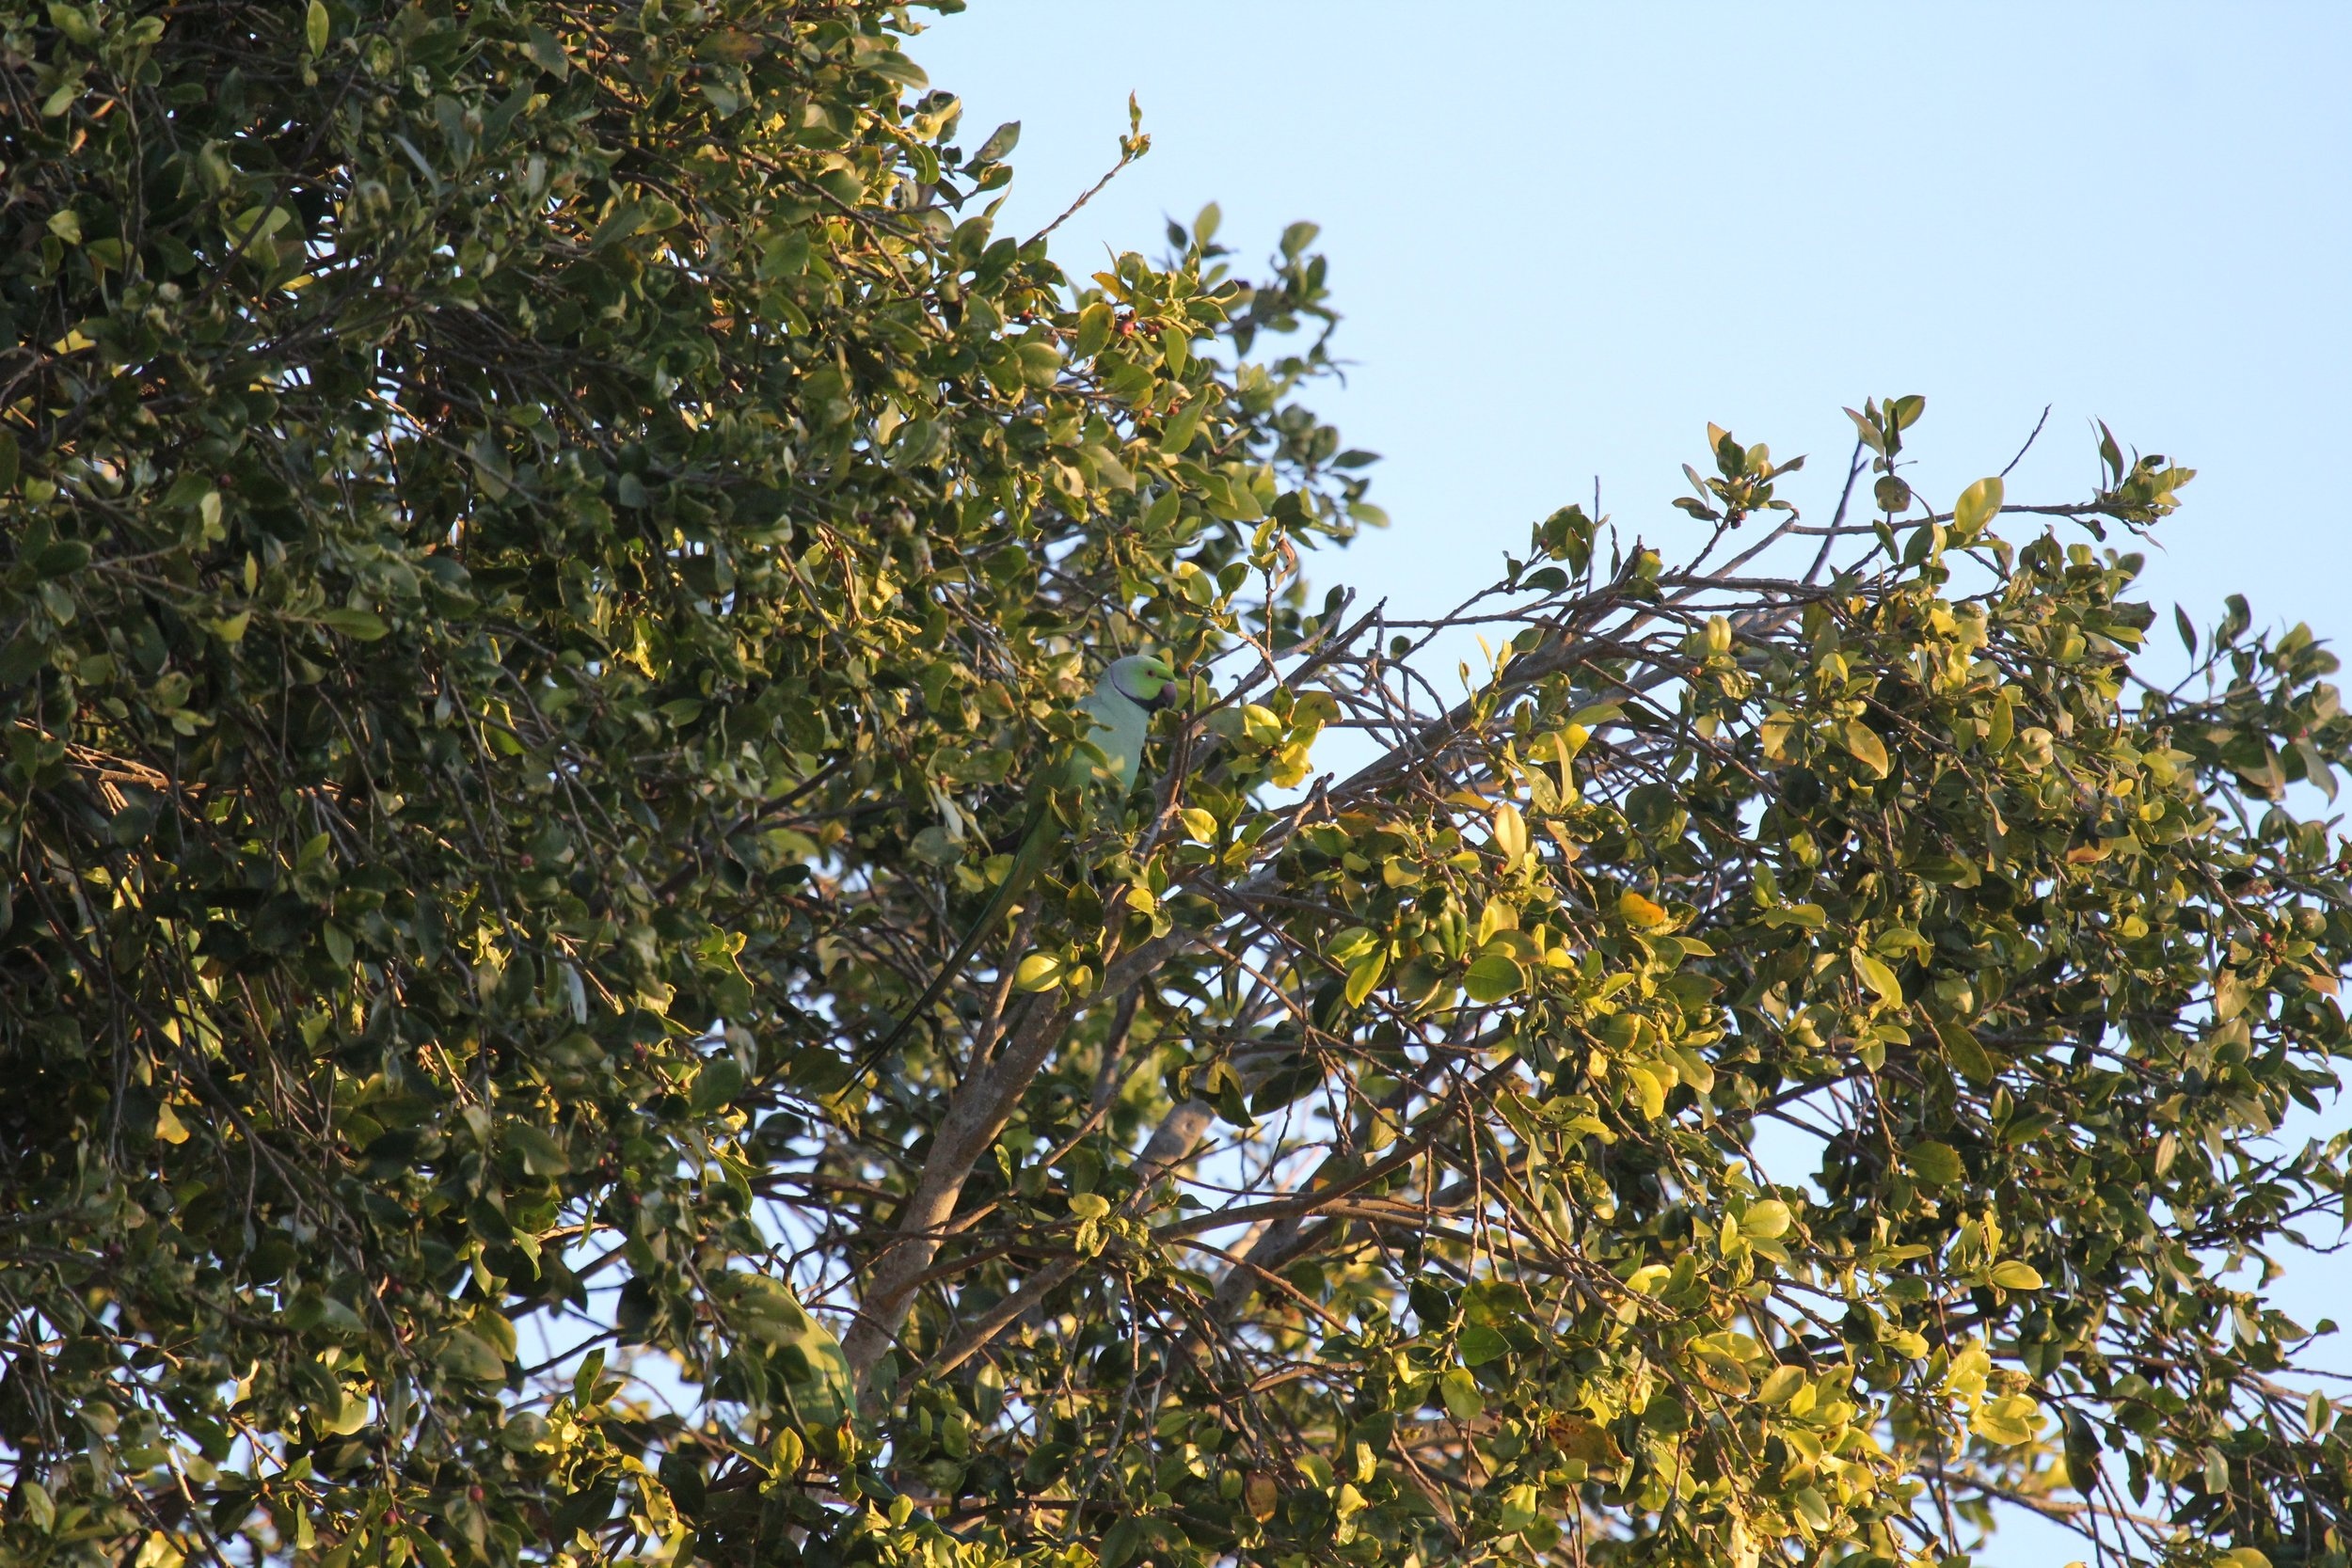 A Rose-ringed Parakeet searching for food in an urban street tree. Playa del Rey, California. One aim of our urban ecology research is to determine tree-species preferences by foraging birds in the urban forest.